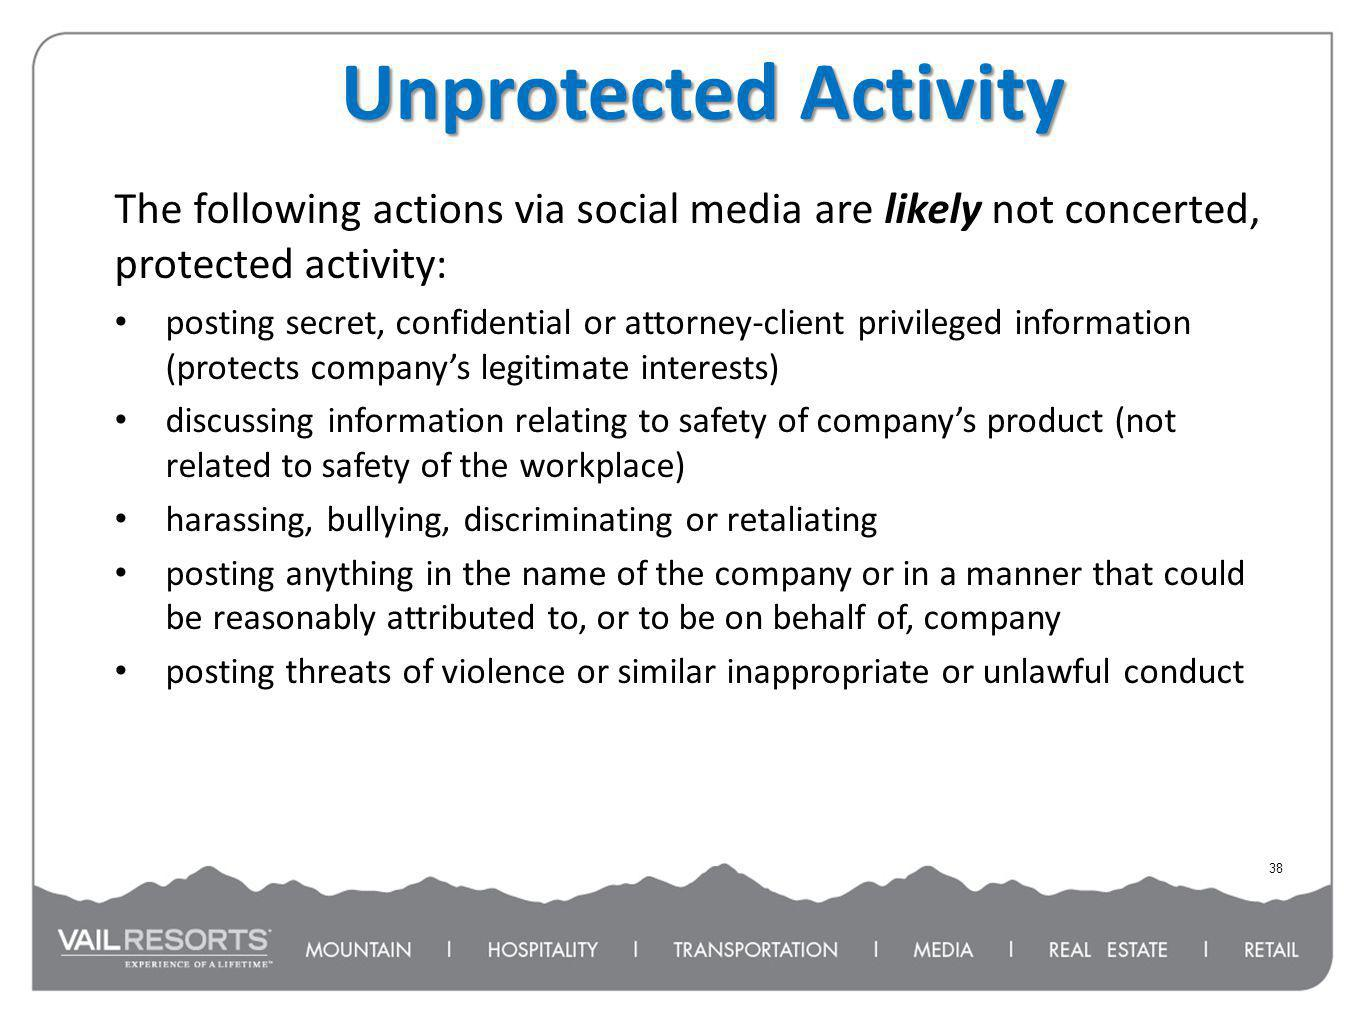 The following actions via social media are likely not concerted, protected activity: posting secret, confidential or attorney-client privileged inform